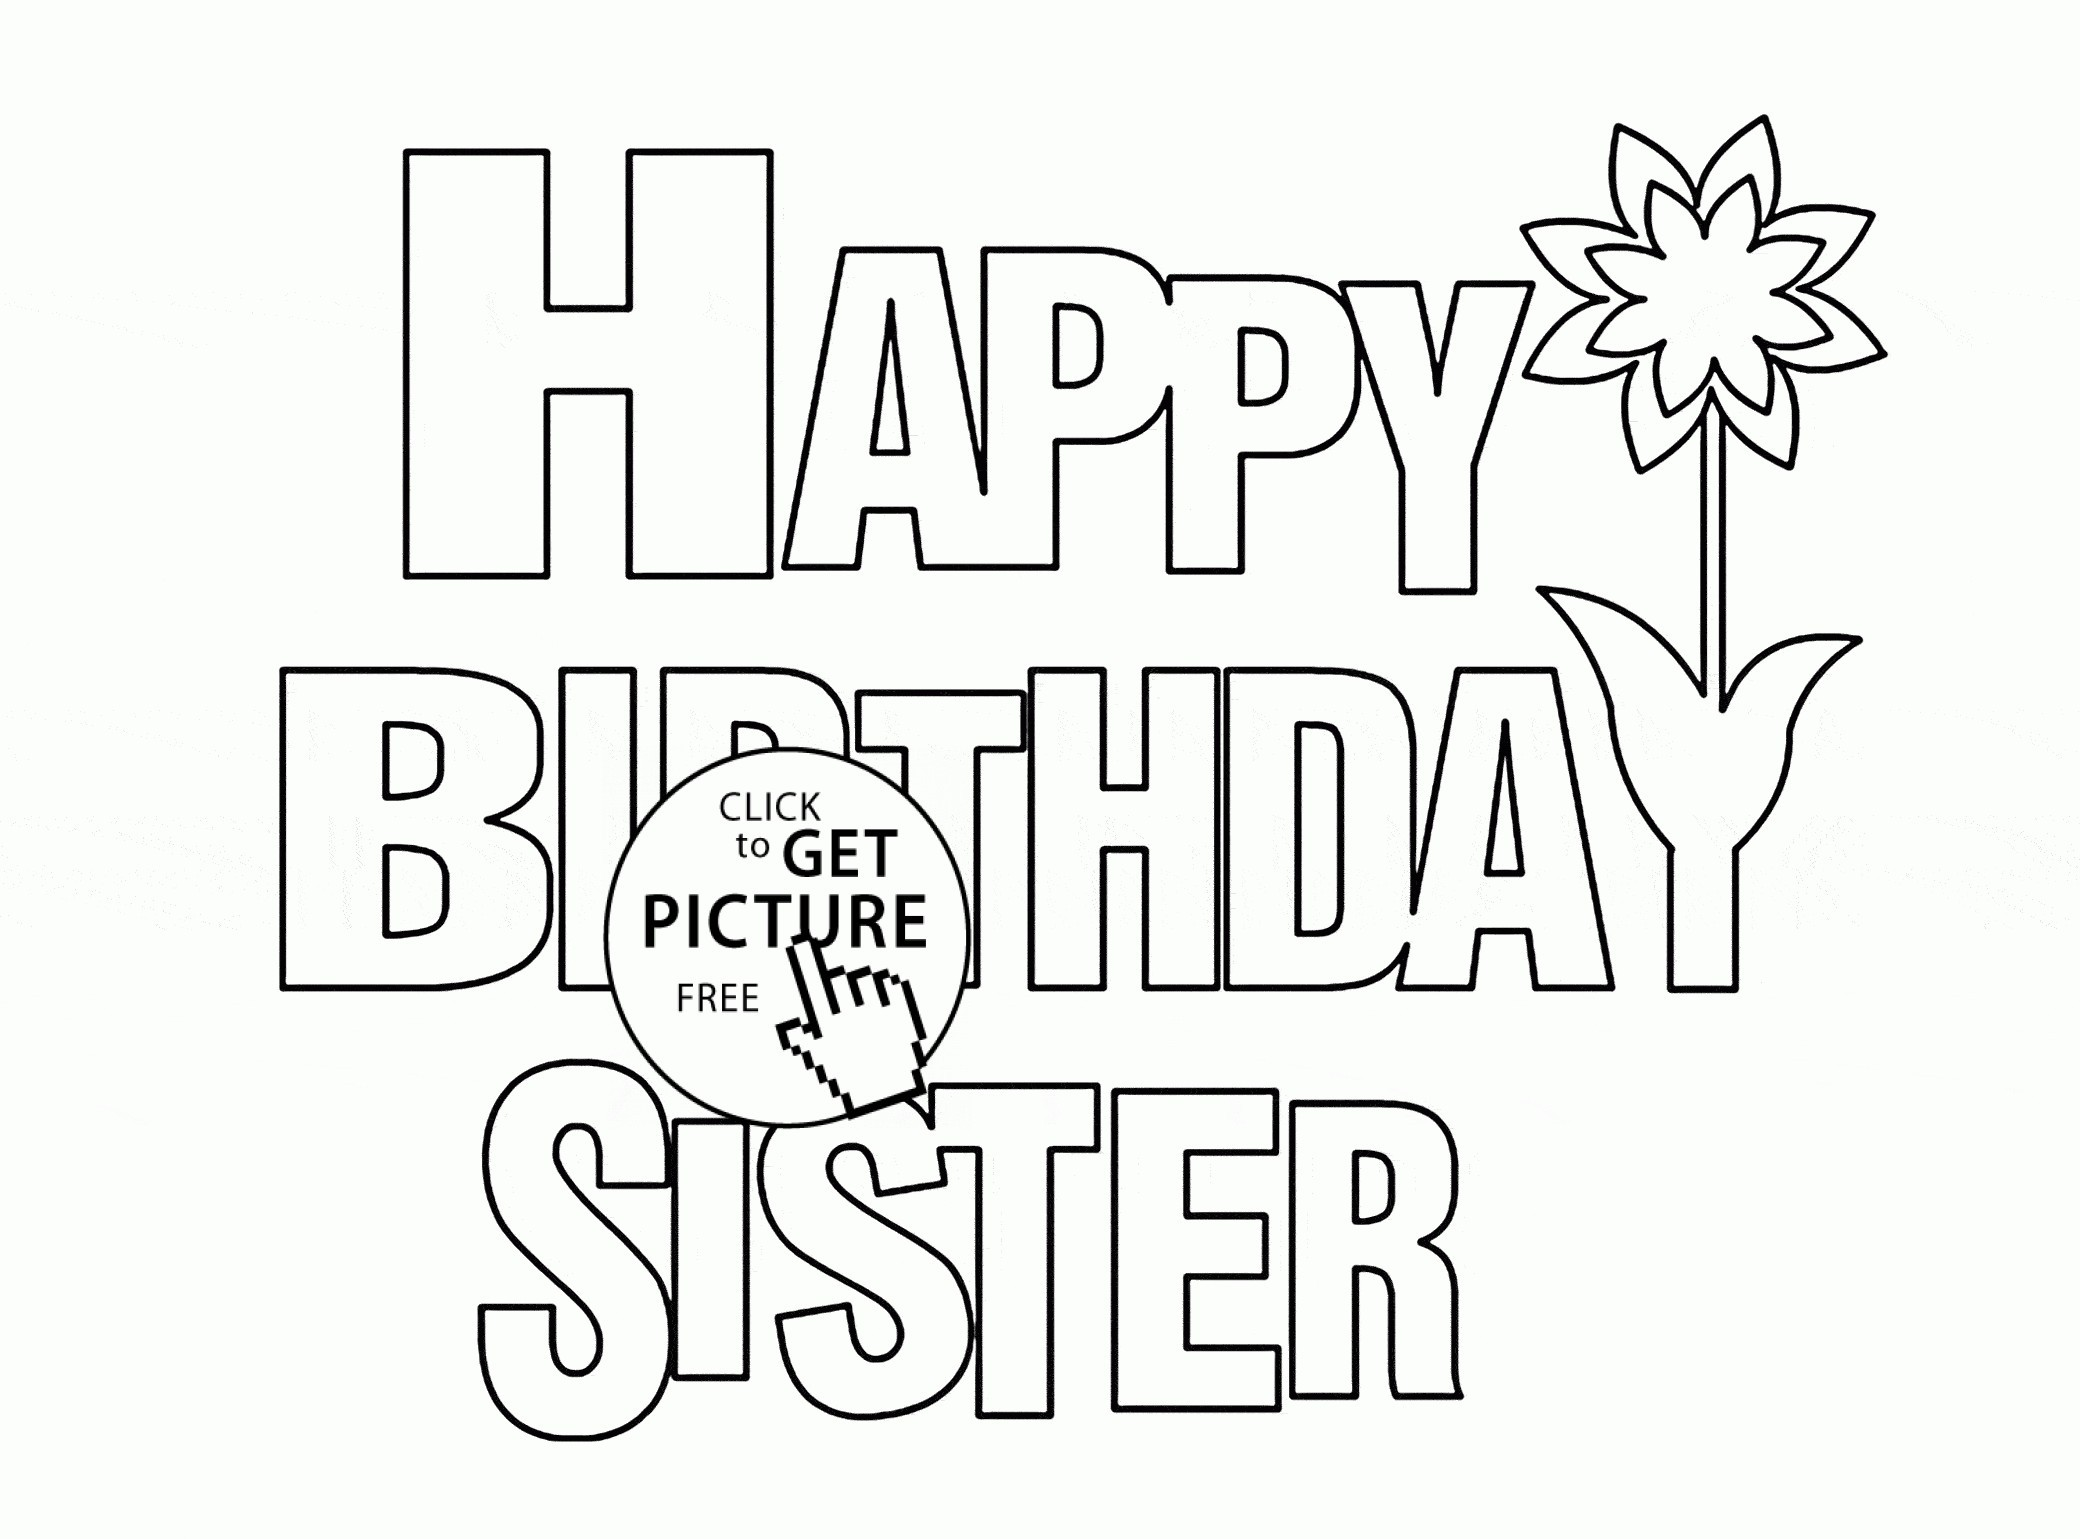 happy birthday sister coloring pages ; big-sister-coloring-pages-save-happy-birthday-sister-coloring-page-for-kids-holiday-img-ripping-big-of-big-sister-coloring-pages